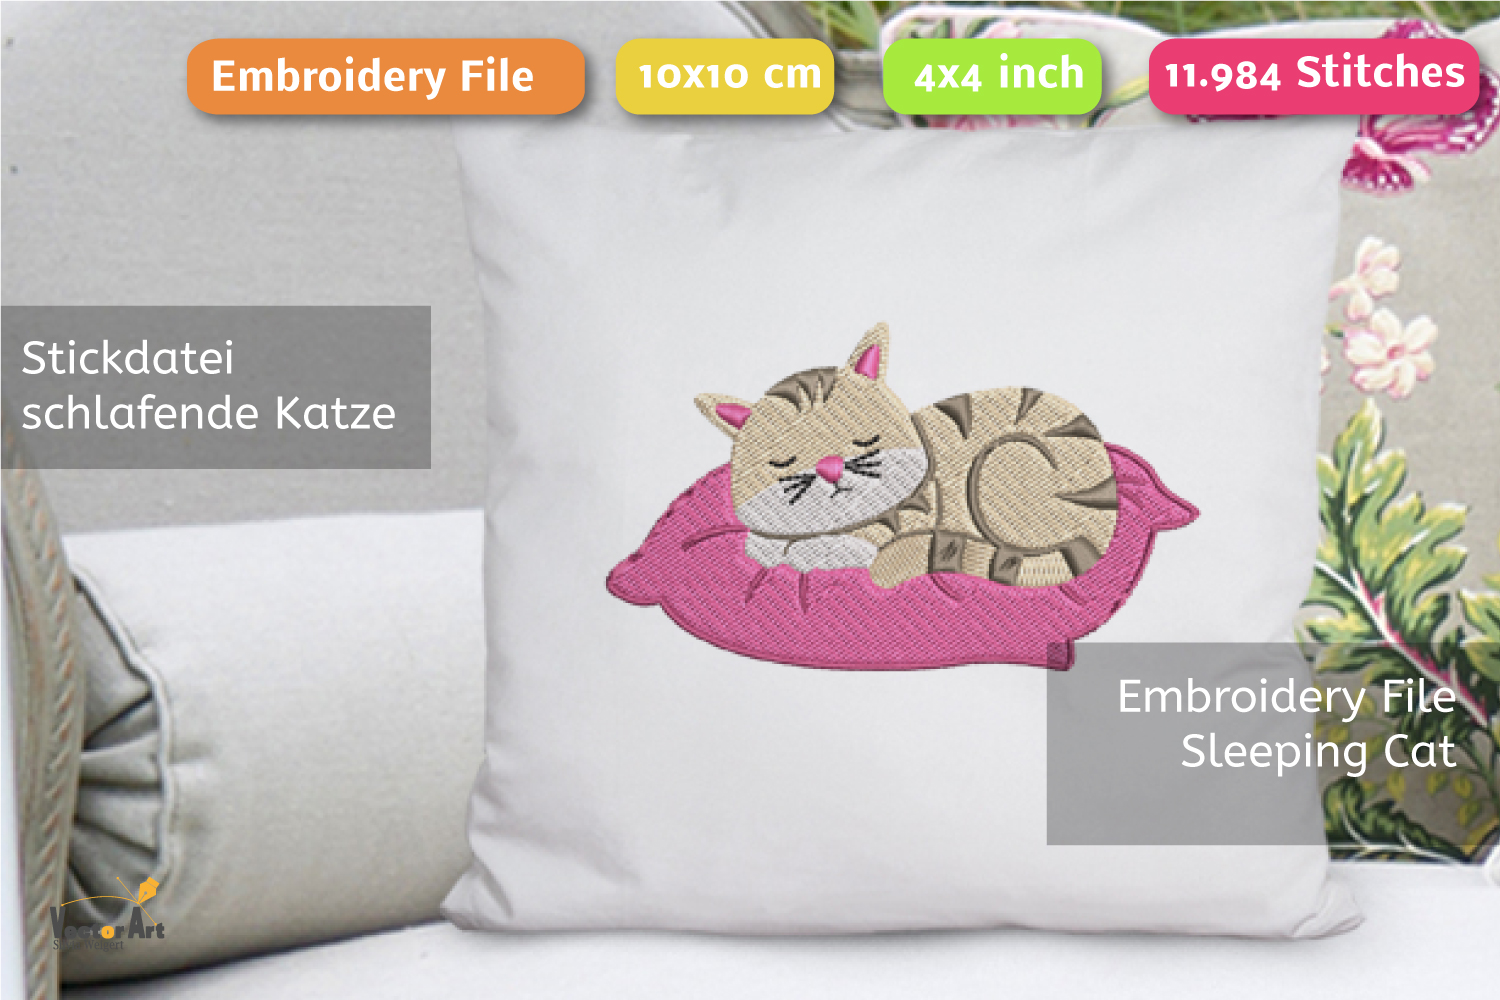 Sleeping Cat on a Pillow - Embroidery File - 4x4 inch example image 1